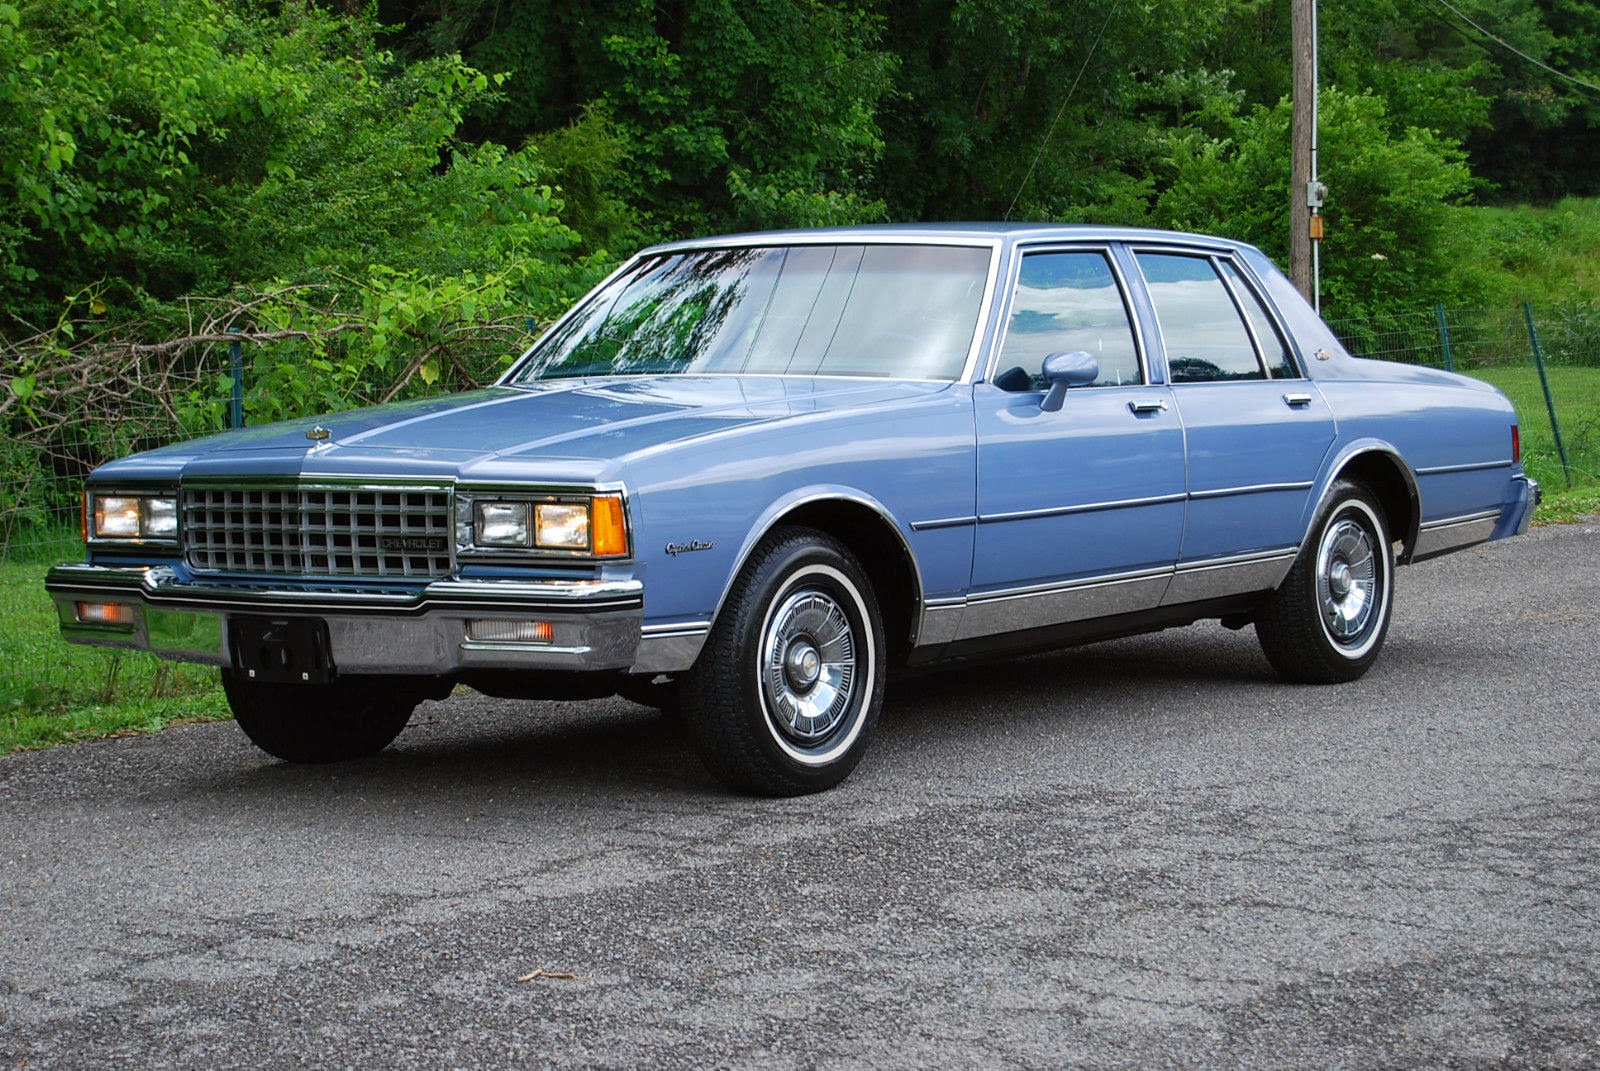 All Chevy chevy caprice 1985 : Daily Turismo: 5k: Best of the Worst: 1984 Chevrolet Caprice Classic